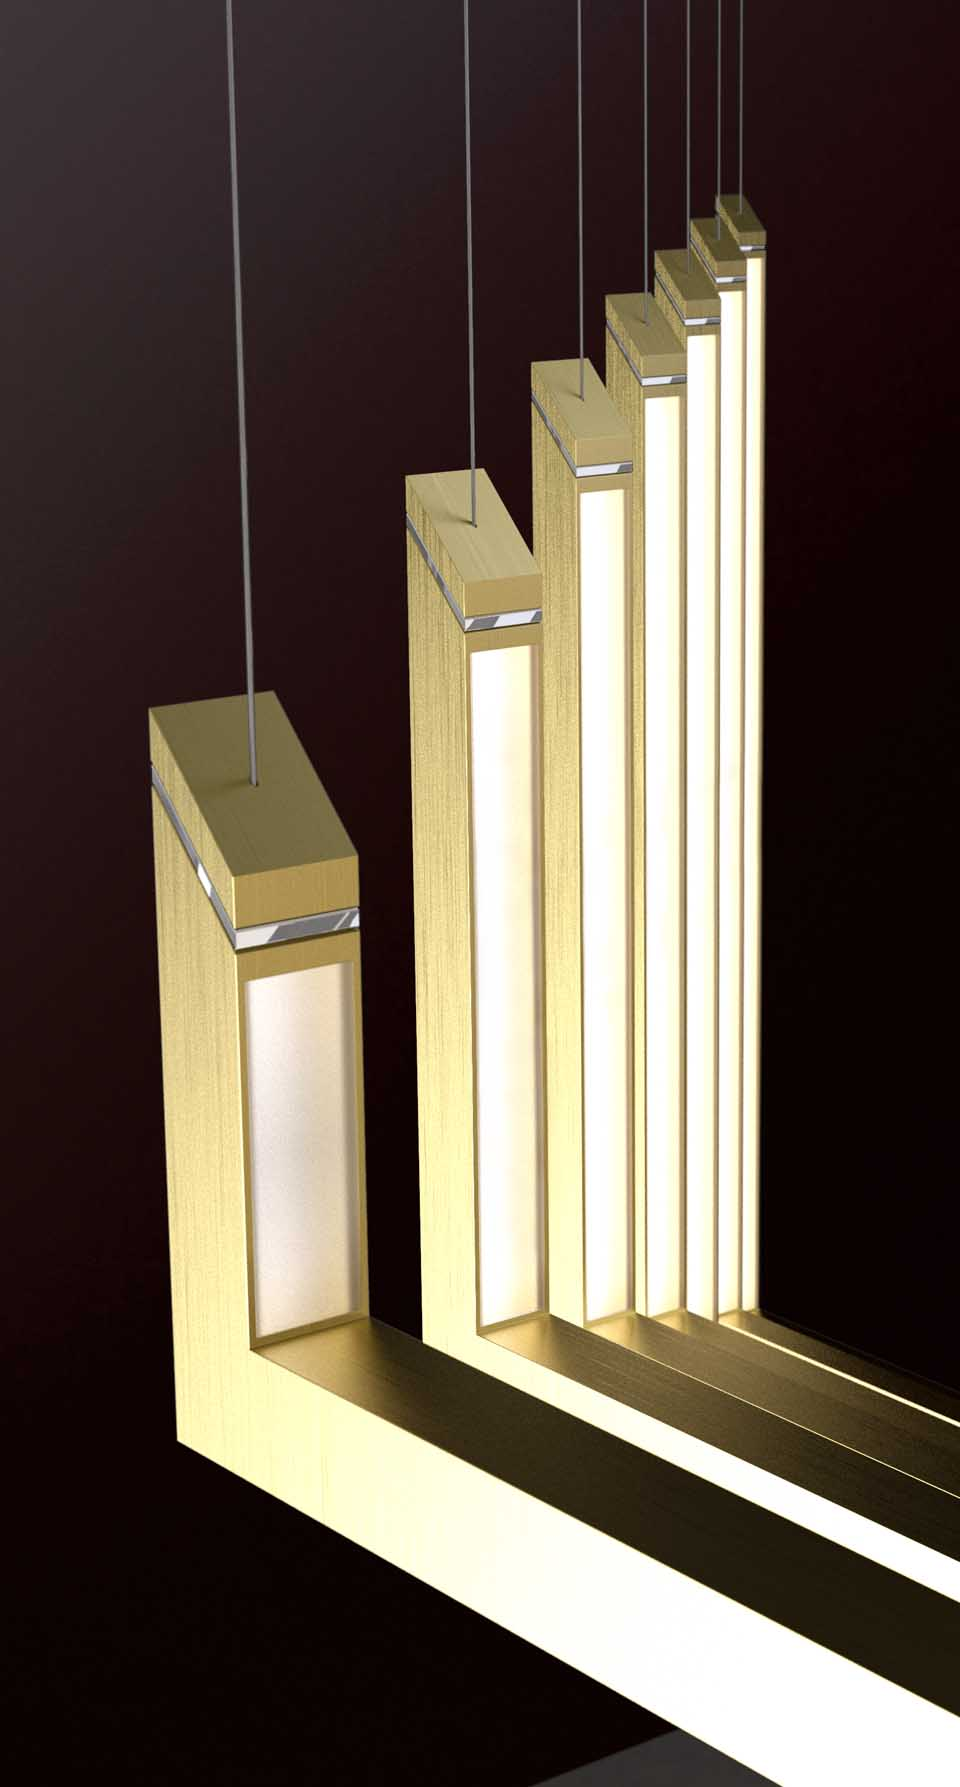 Modern Chandelier Sleek Angled Design Illuminated Internal Vertical Opal Sheet Diffuser Brushed Brass Finish Luxury Lighting Nulty Bespoke